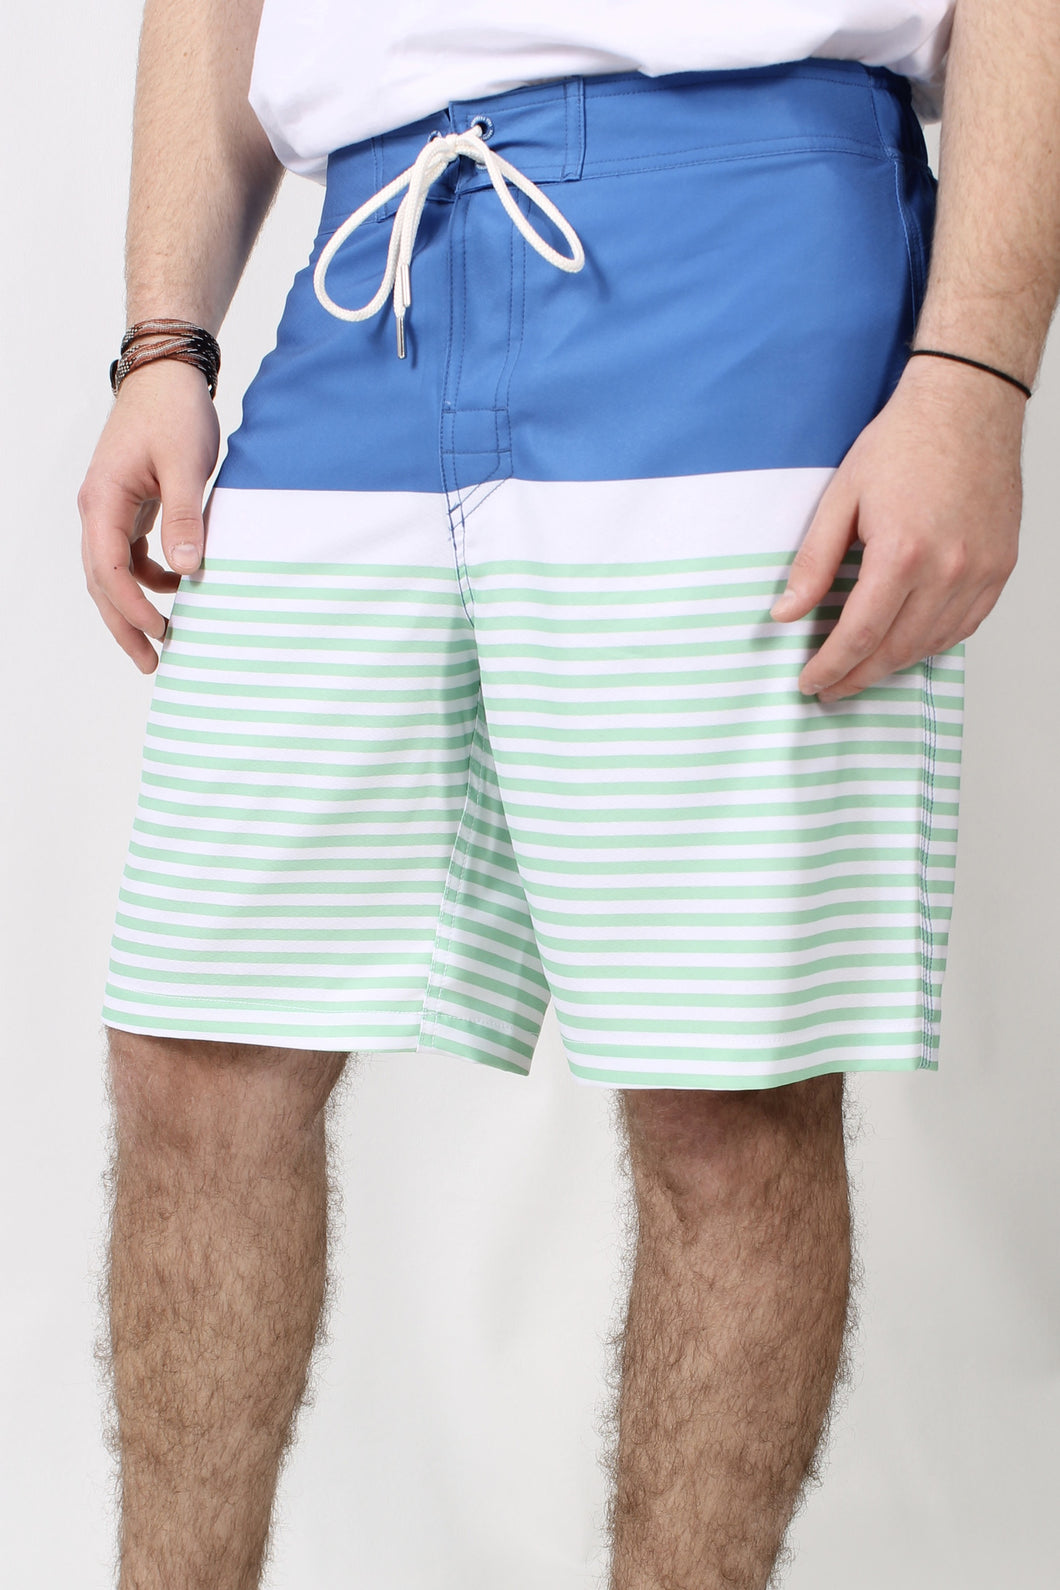 Cobalt Blue Trunks- Southern Tide Horizon Stripe Water Short Front